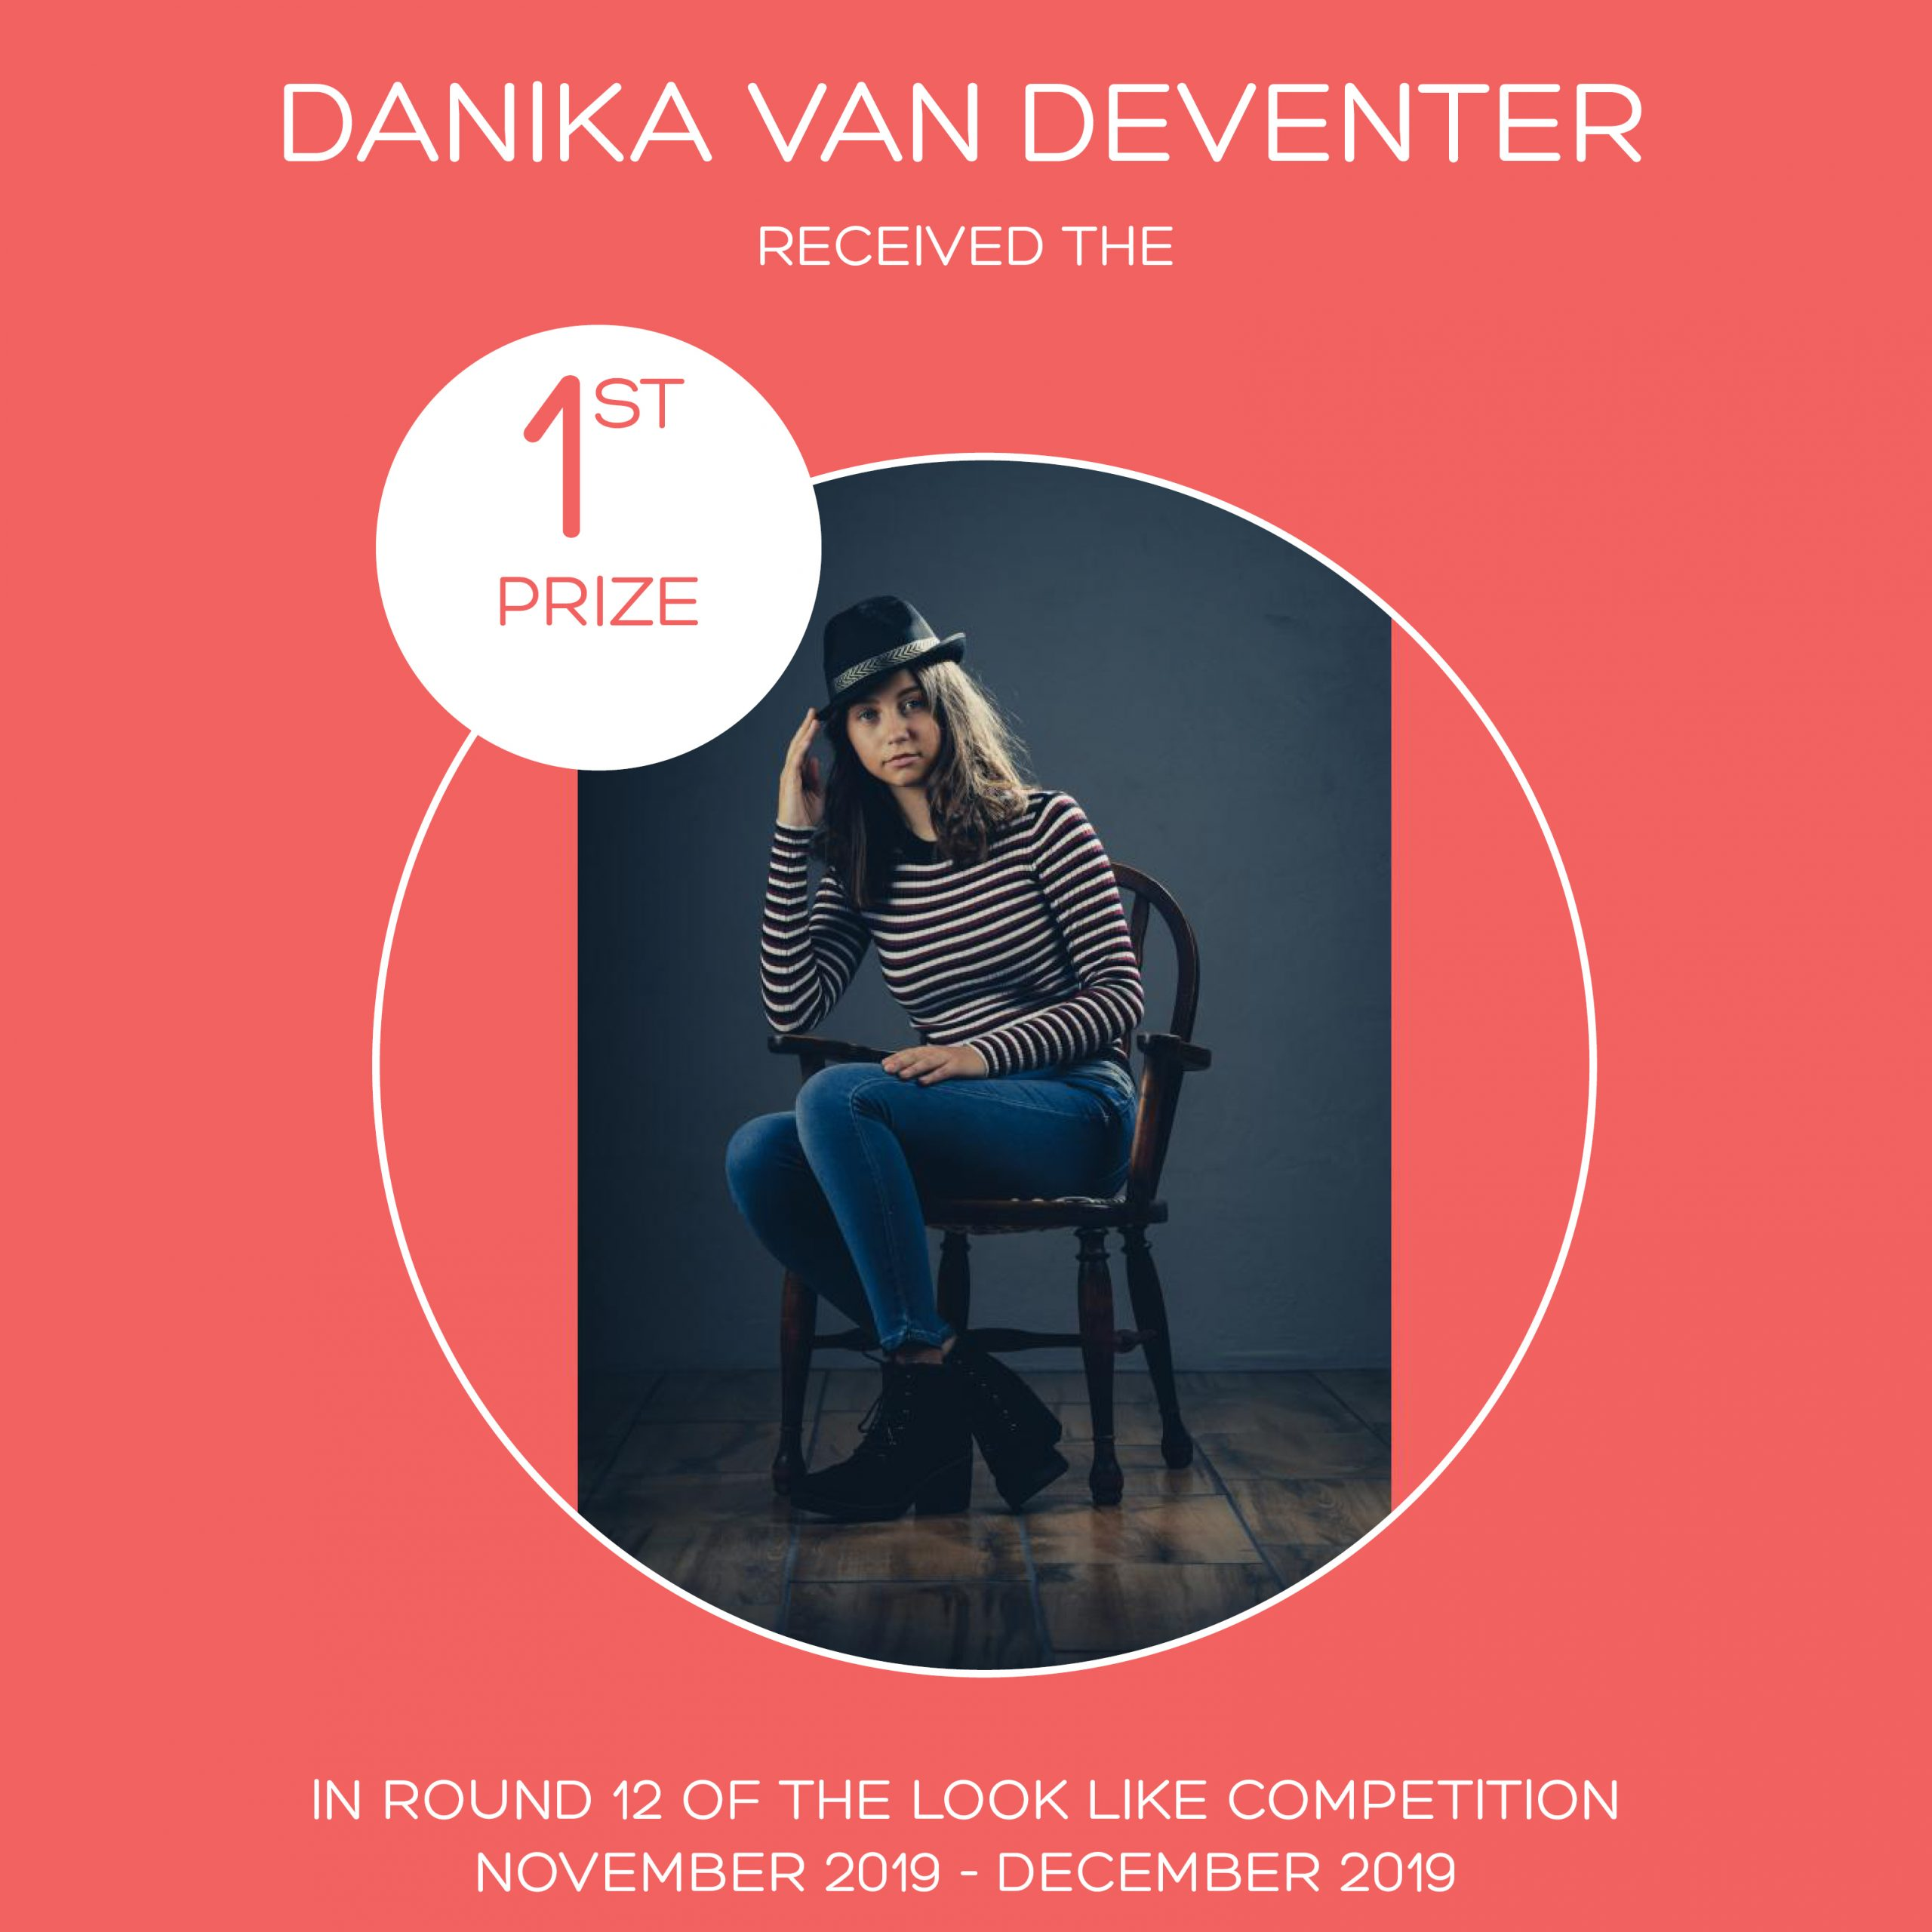 ROUND 12 – FLASH FASHION ROUND – 1ST PRIZE – DANIKA VAN DEVENTER